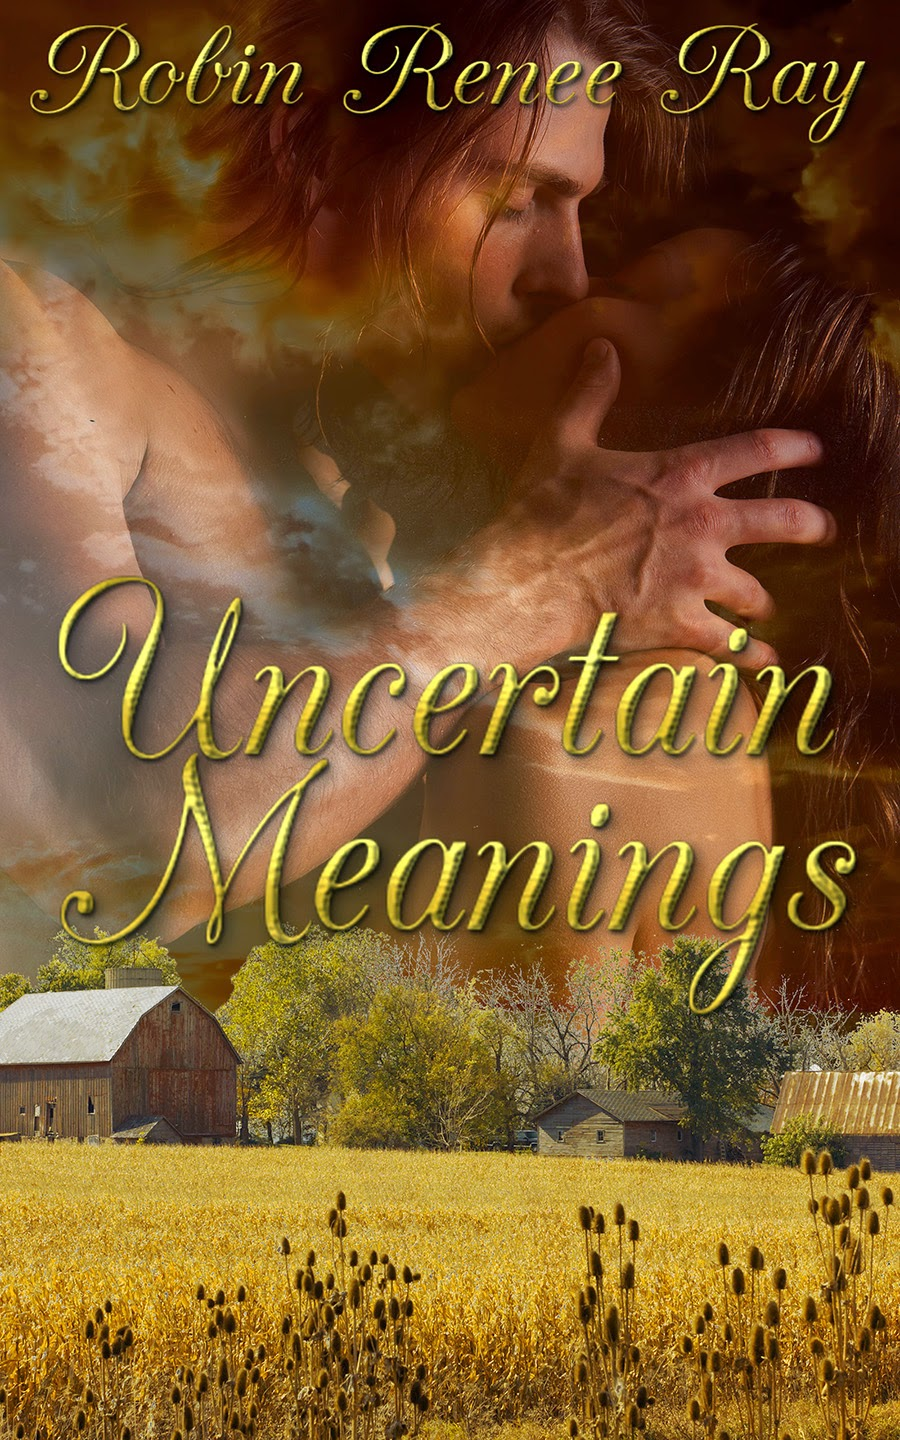 http://www.amazon.com/Uncertain-Meanings-Robin-Renee-Ray-ebook/dp/B00DV70V7G/ref=la_B004FK58DA_1_1?s=books&ie=UTF8&qid=1414397437&sr=1-1